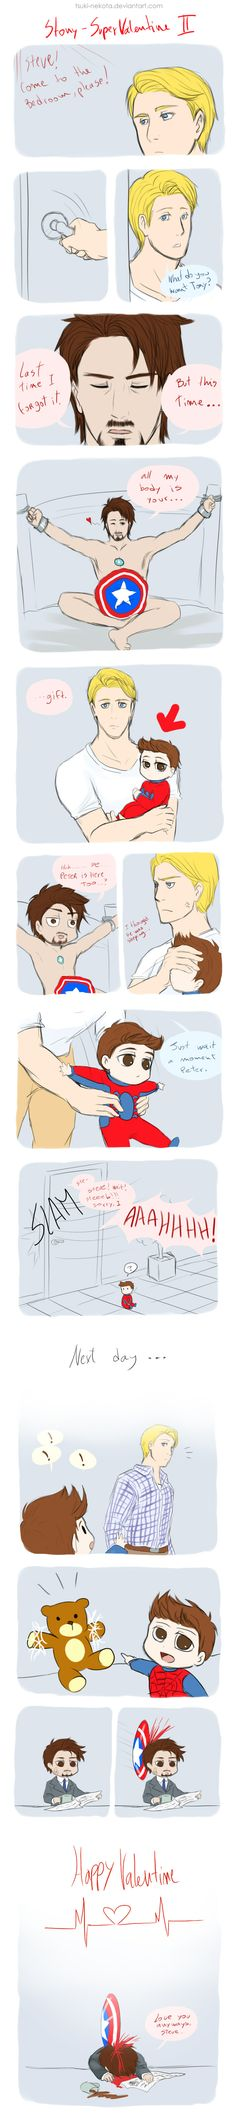 Stony - Super Valentine II by *Tsuki-Nekota on deviantART